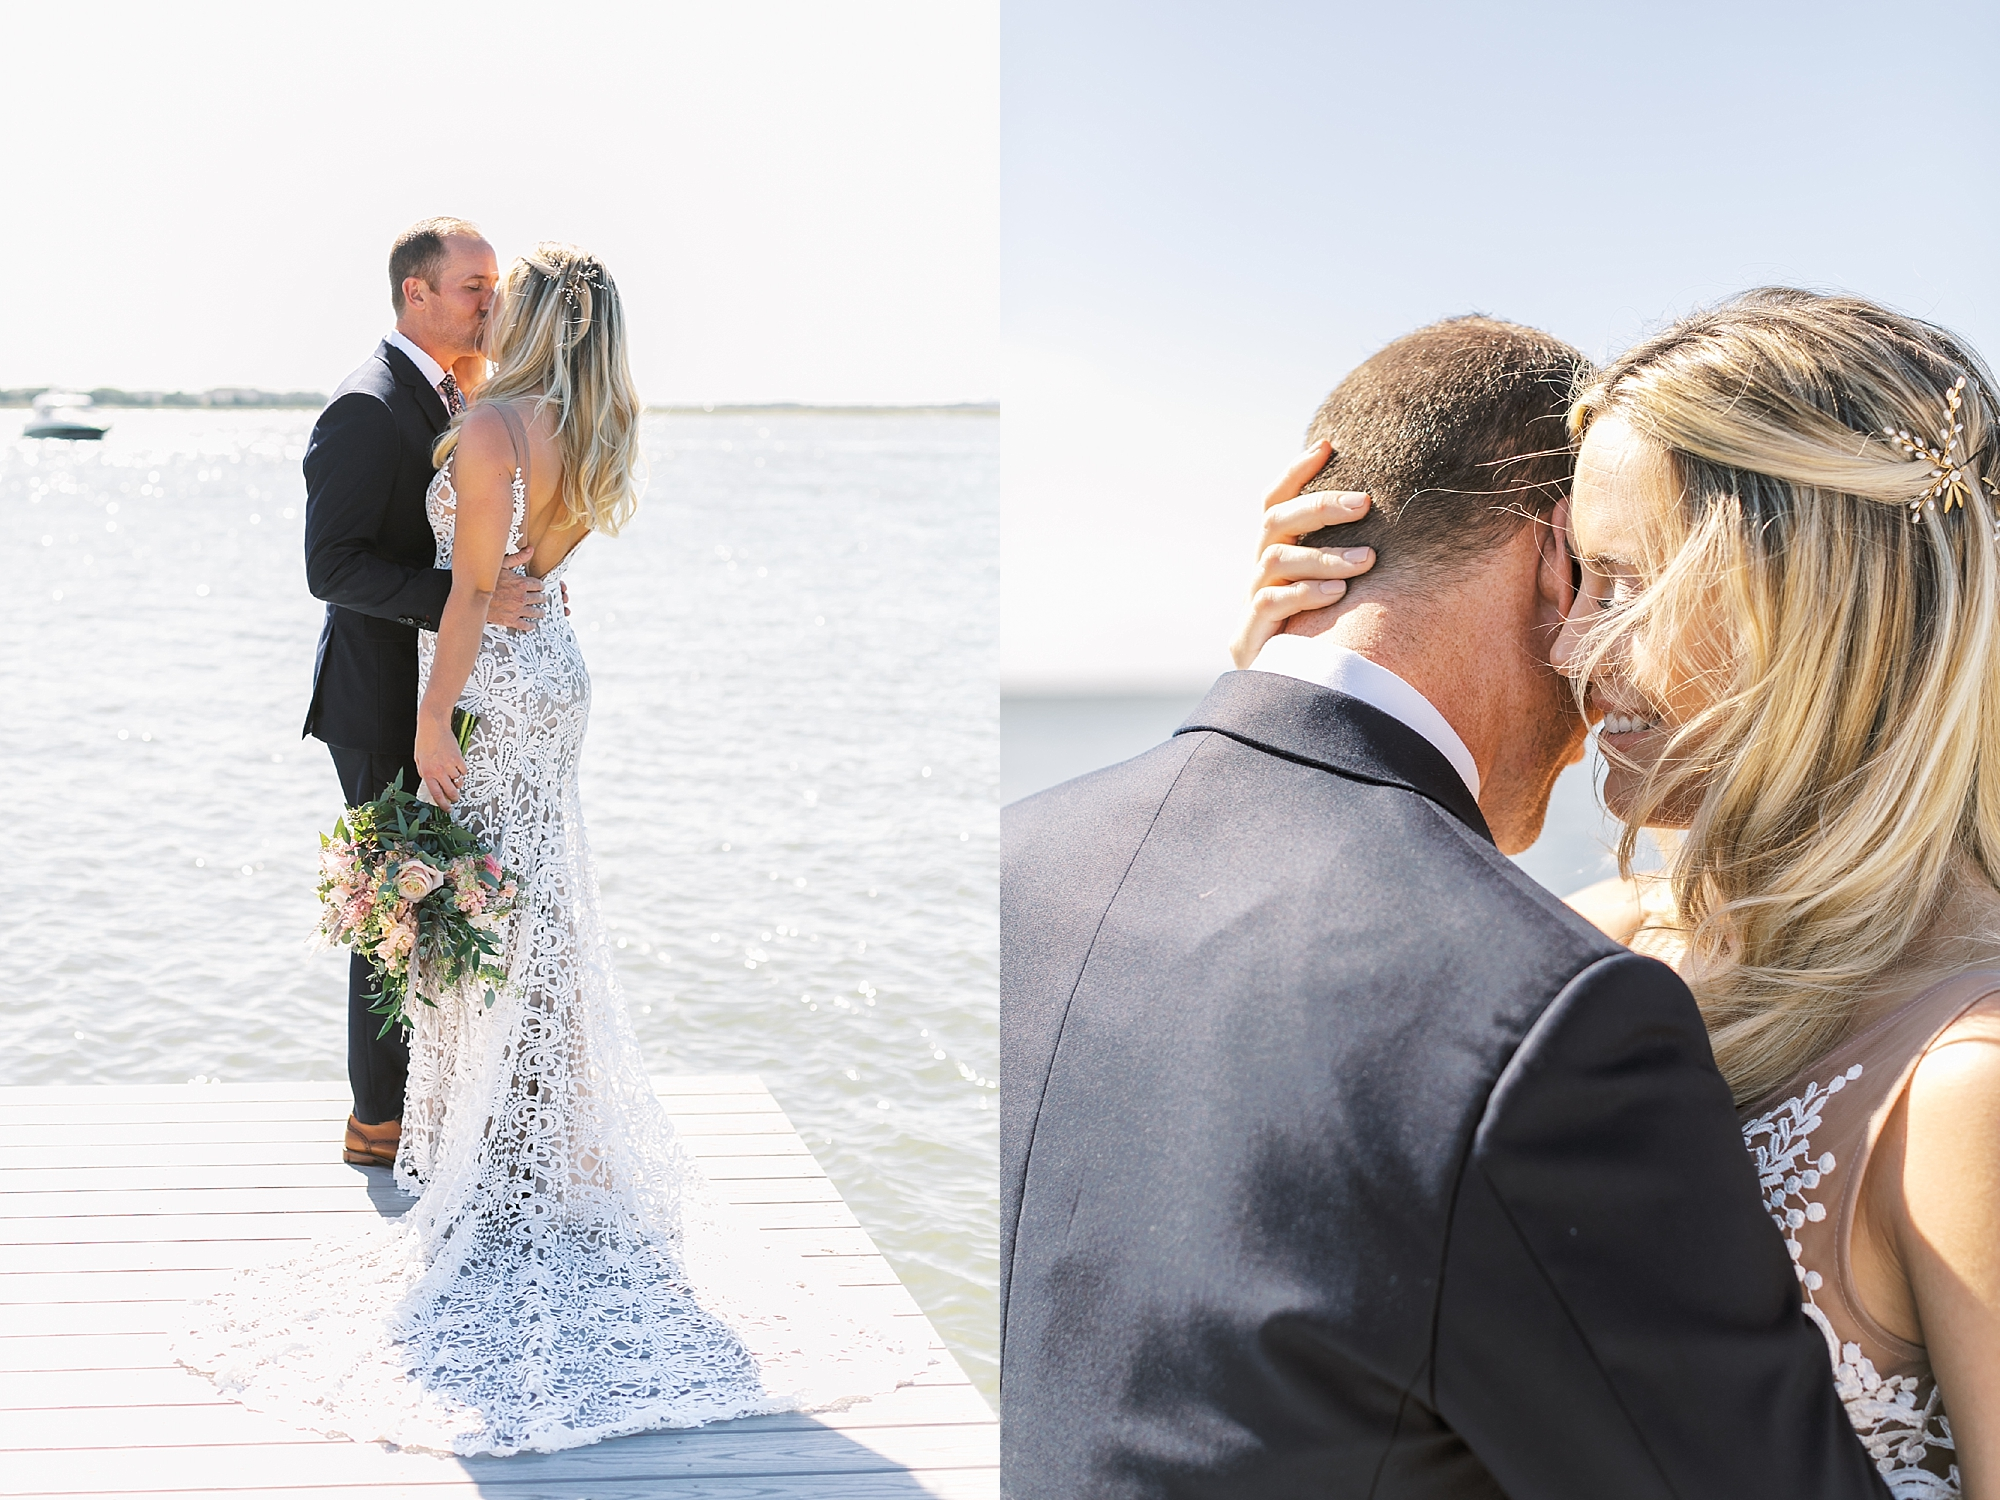 Stylish and Free Spirited Wedding Photography at One Atlantic in Atlantic City NJ by Magdalena Studios 0040 1